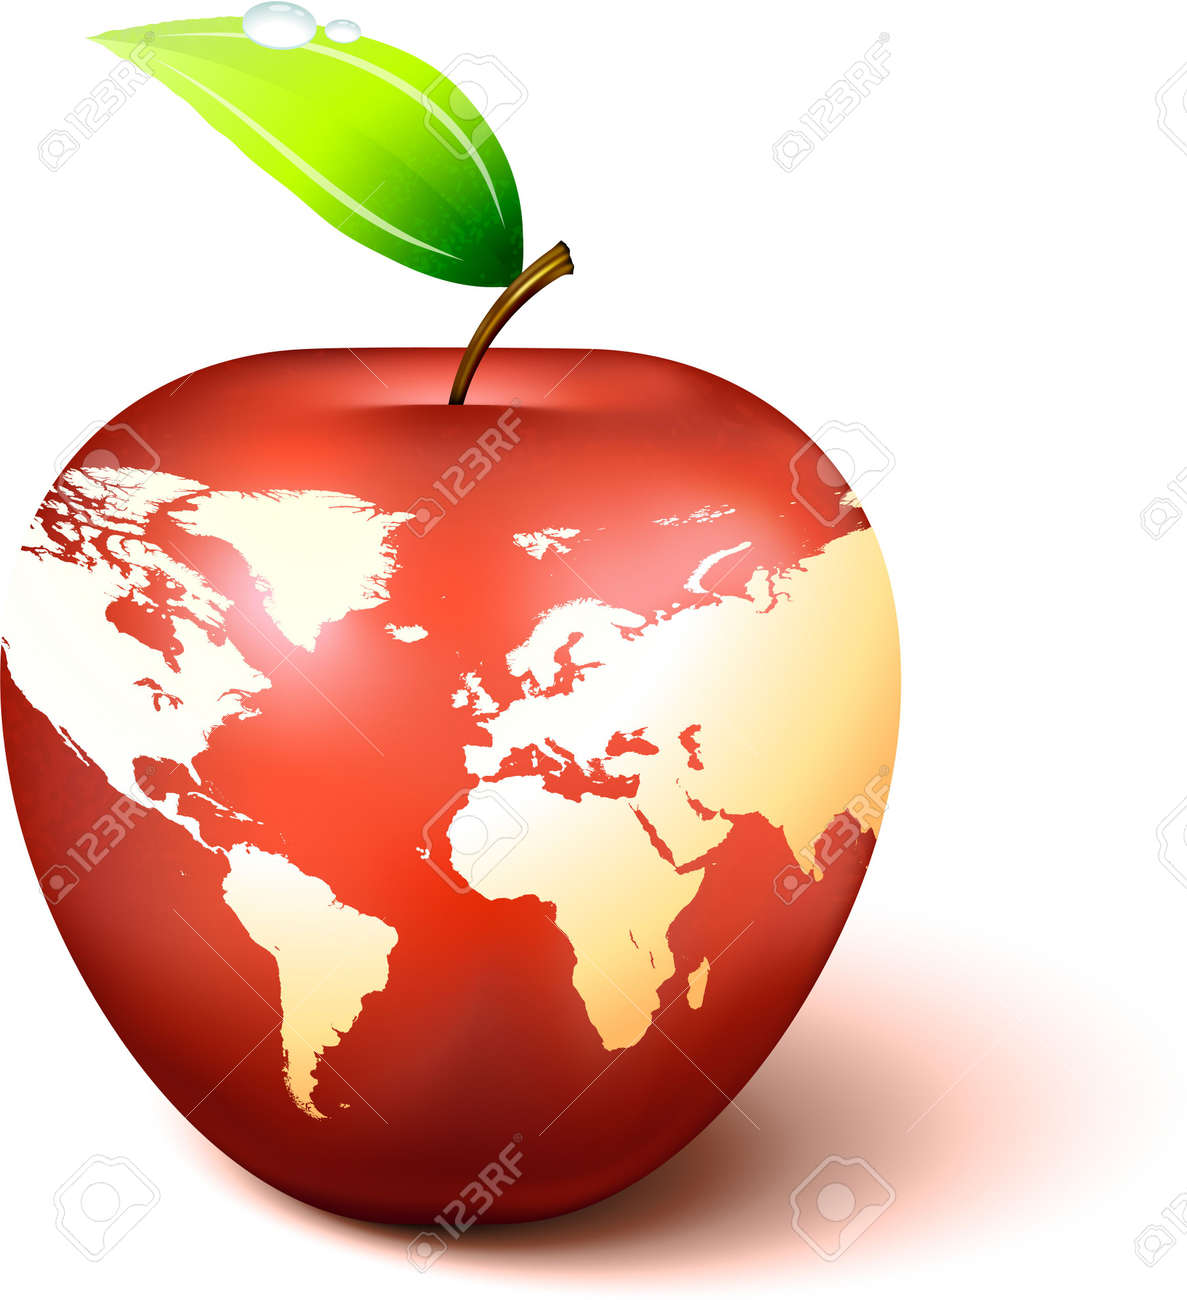 Apple globe with world map original vector illustration apple apple globe with world map original vector illustration apple illustration stock illustration 6572860 gumiabroncs Images